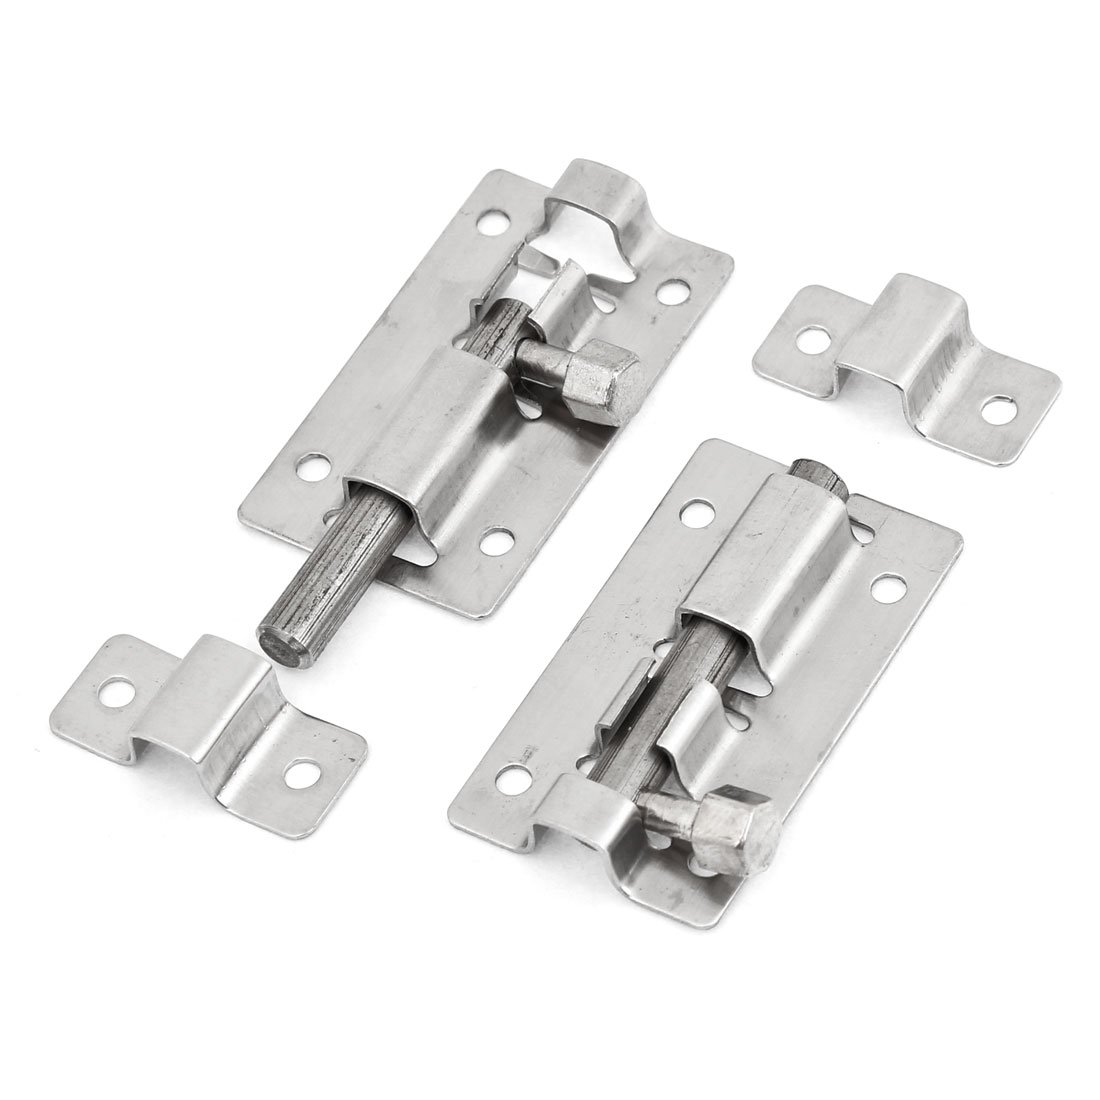 2 sets 63mm long interior door lock stainless steel slide barrel does not apply vtopaller Image collections